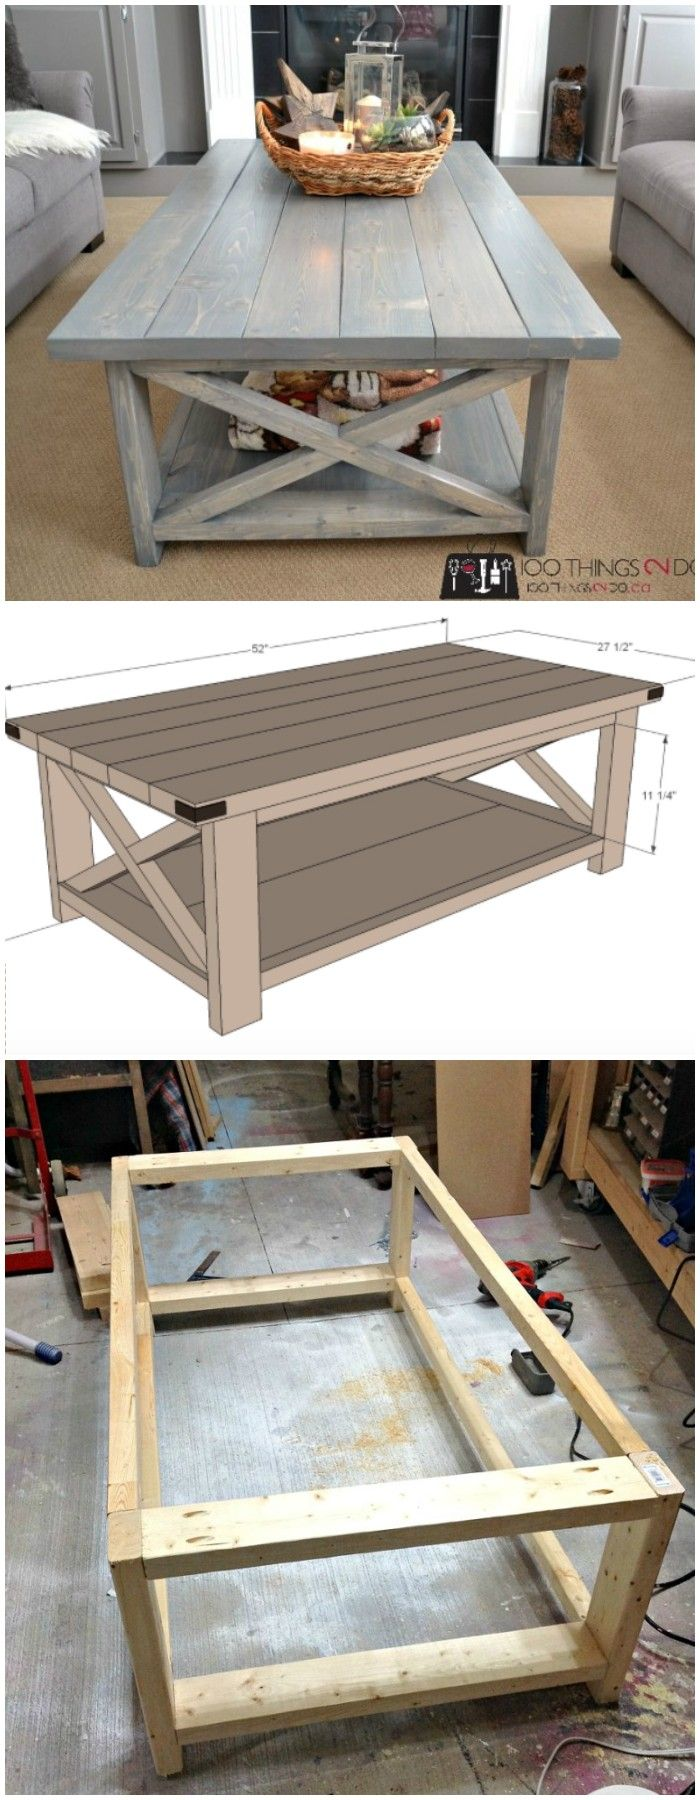 Diy farmhouse coffee table ideas from cute cubes to industrial